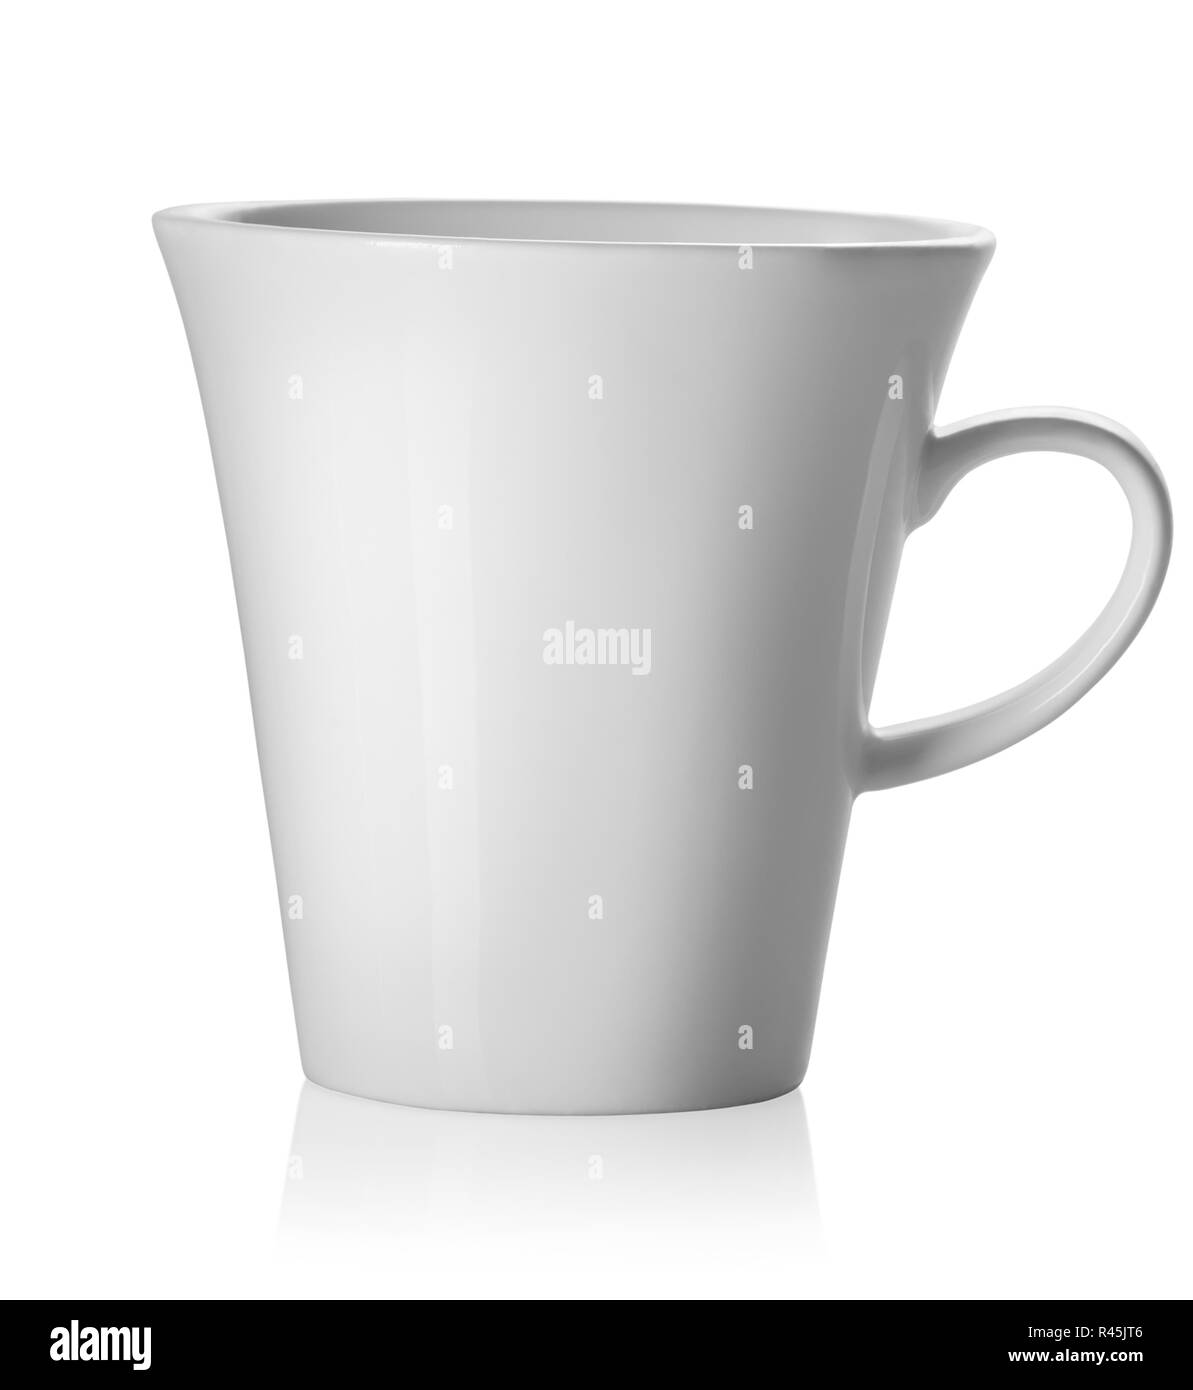 Teacup isolated on white - Stock Image